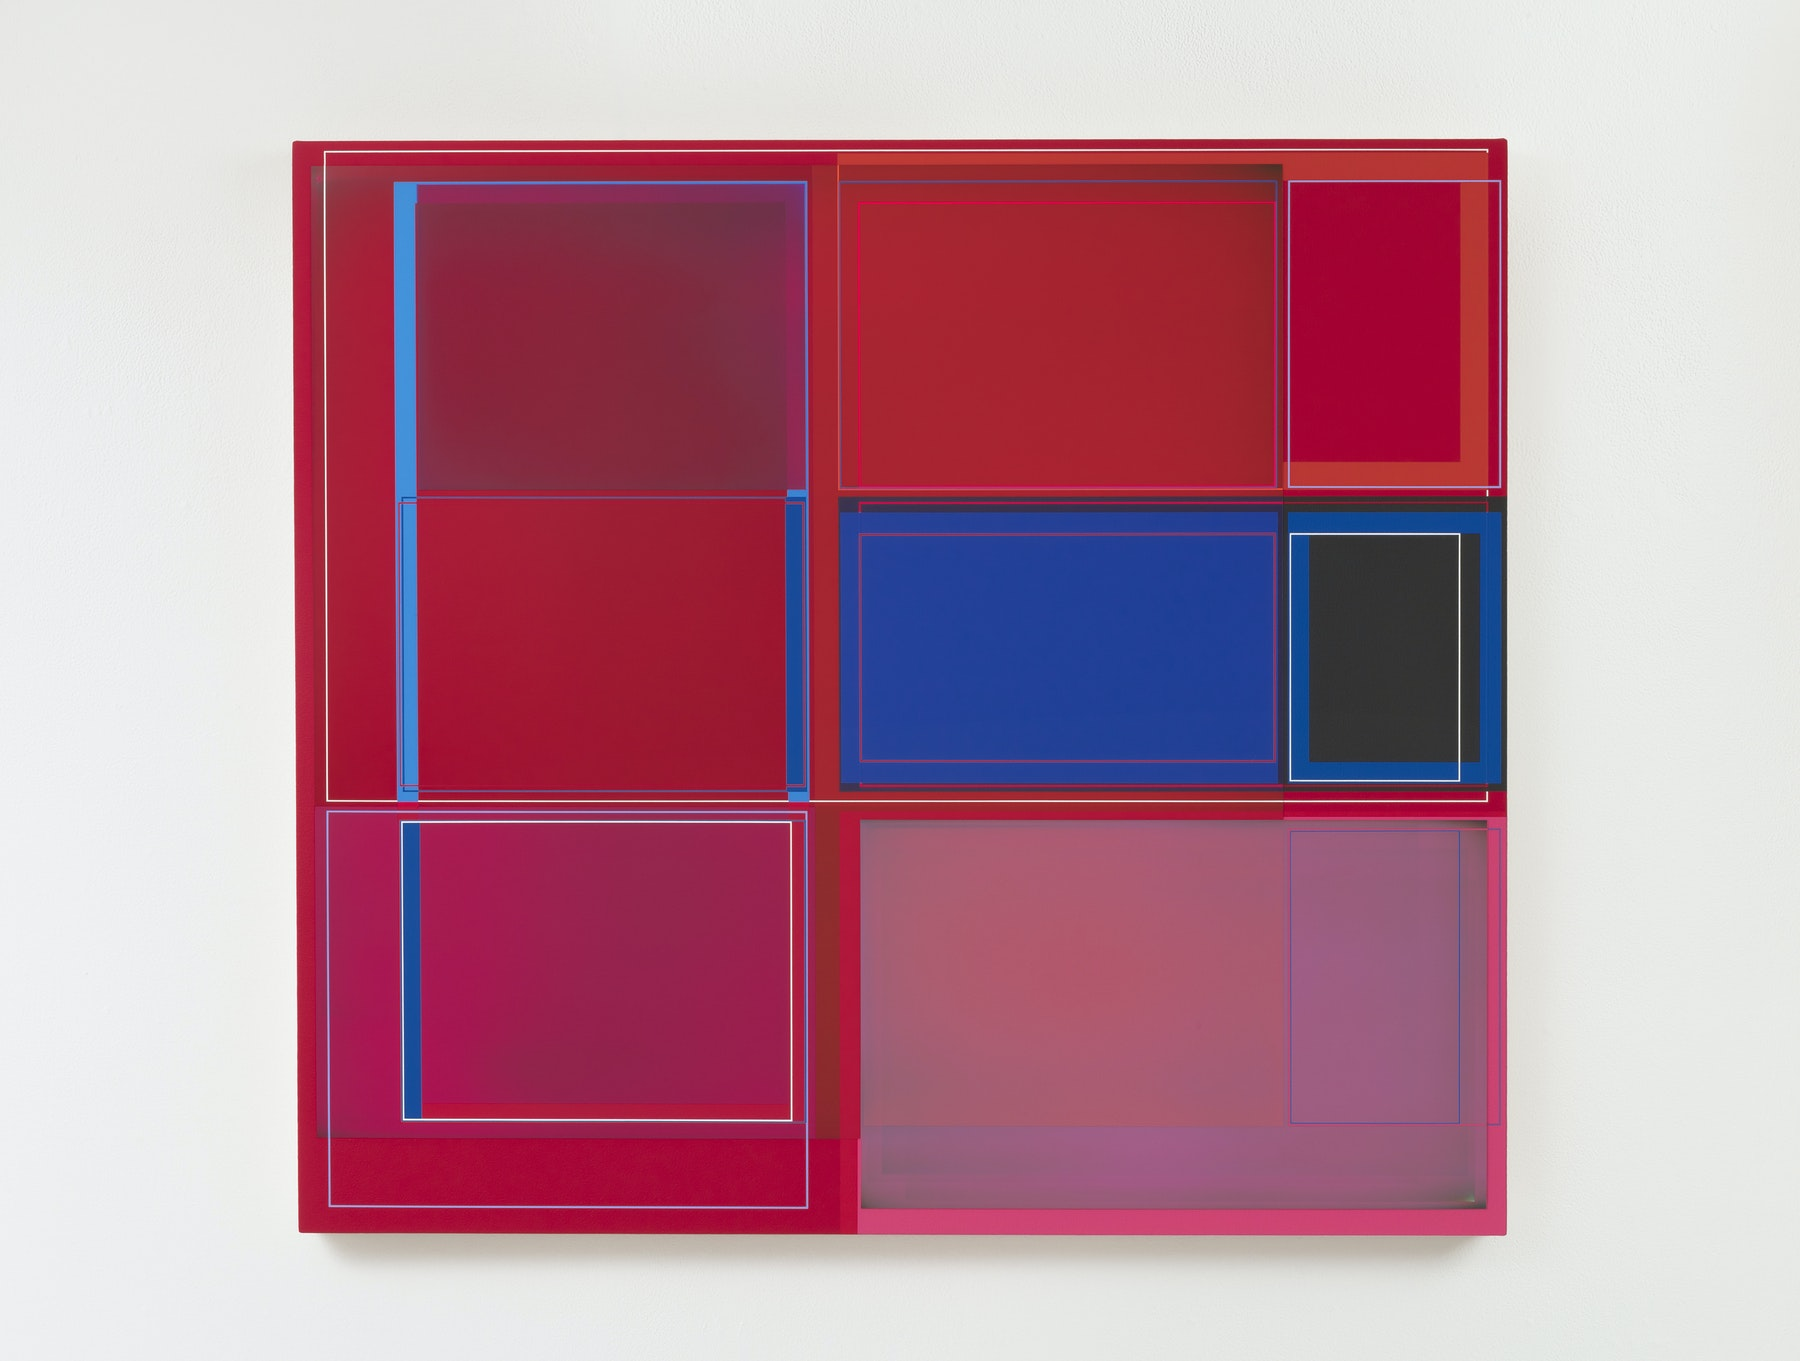 "Patrick Wilson ""Disrupted Grid (Red),"" 2020 Acrylic on canvas 37 x 41"" [HxW] (93.98 x 104.14 cm) Inventory #WIL564 Courtesy of the artist and Vielmetter Los Angeles Photo credit: Robert Wedemeyer"